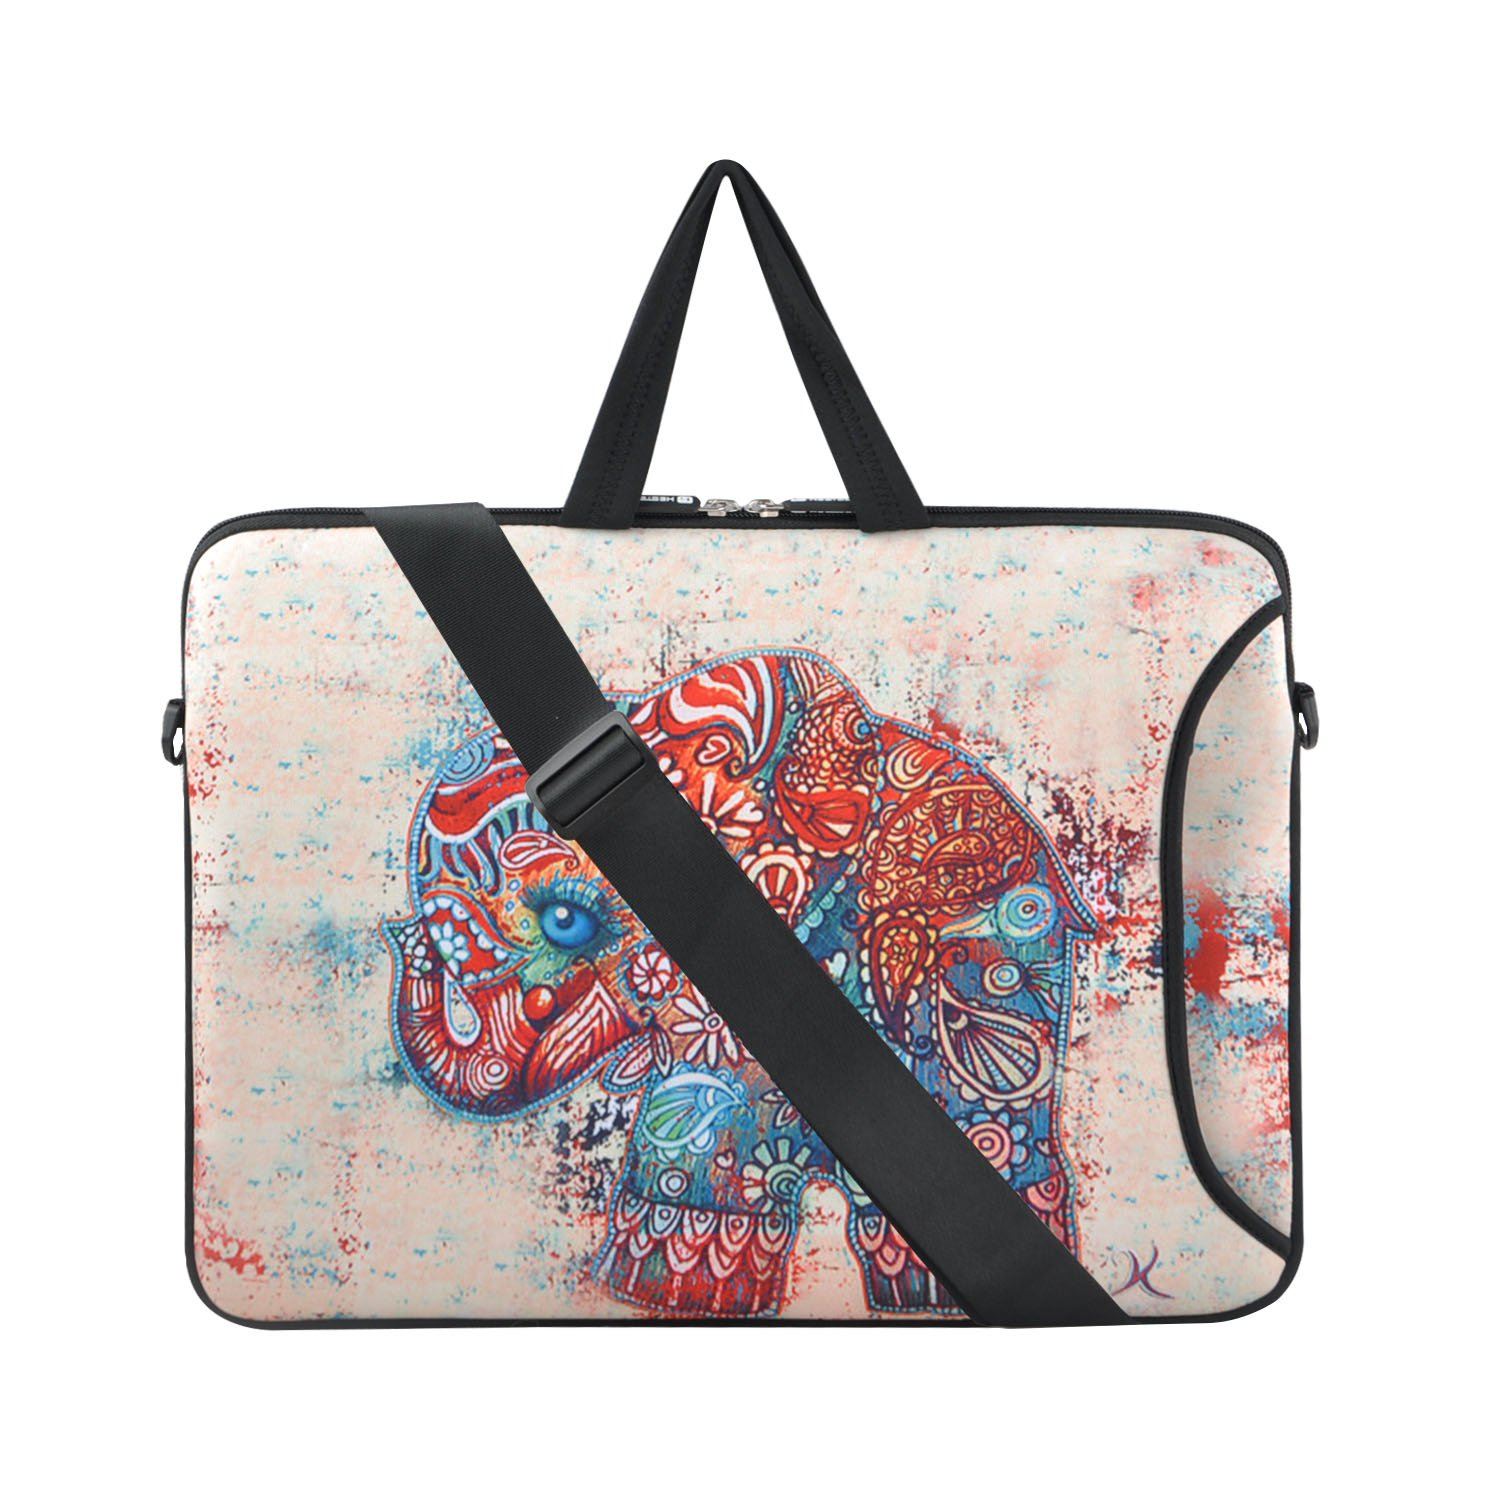 Chromebook Sleeve Laptop Shoulder Bag For Surface Pro 5 Tas Macbook Air Retina 11 12 13 14 15 Inch Notebook 4 3 Apple New A1706 A1708 Dell Xps 116 Asus Samsung